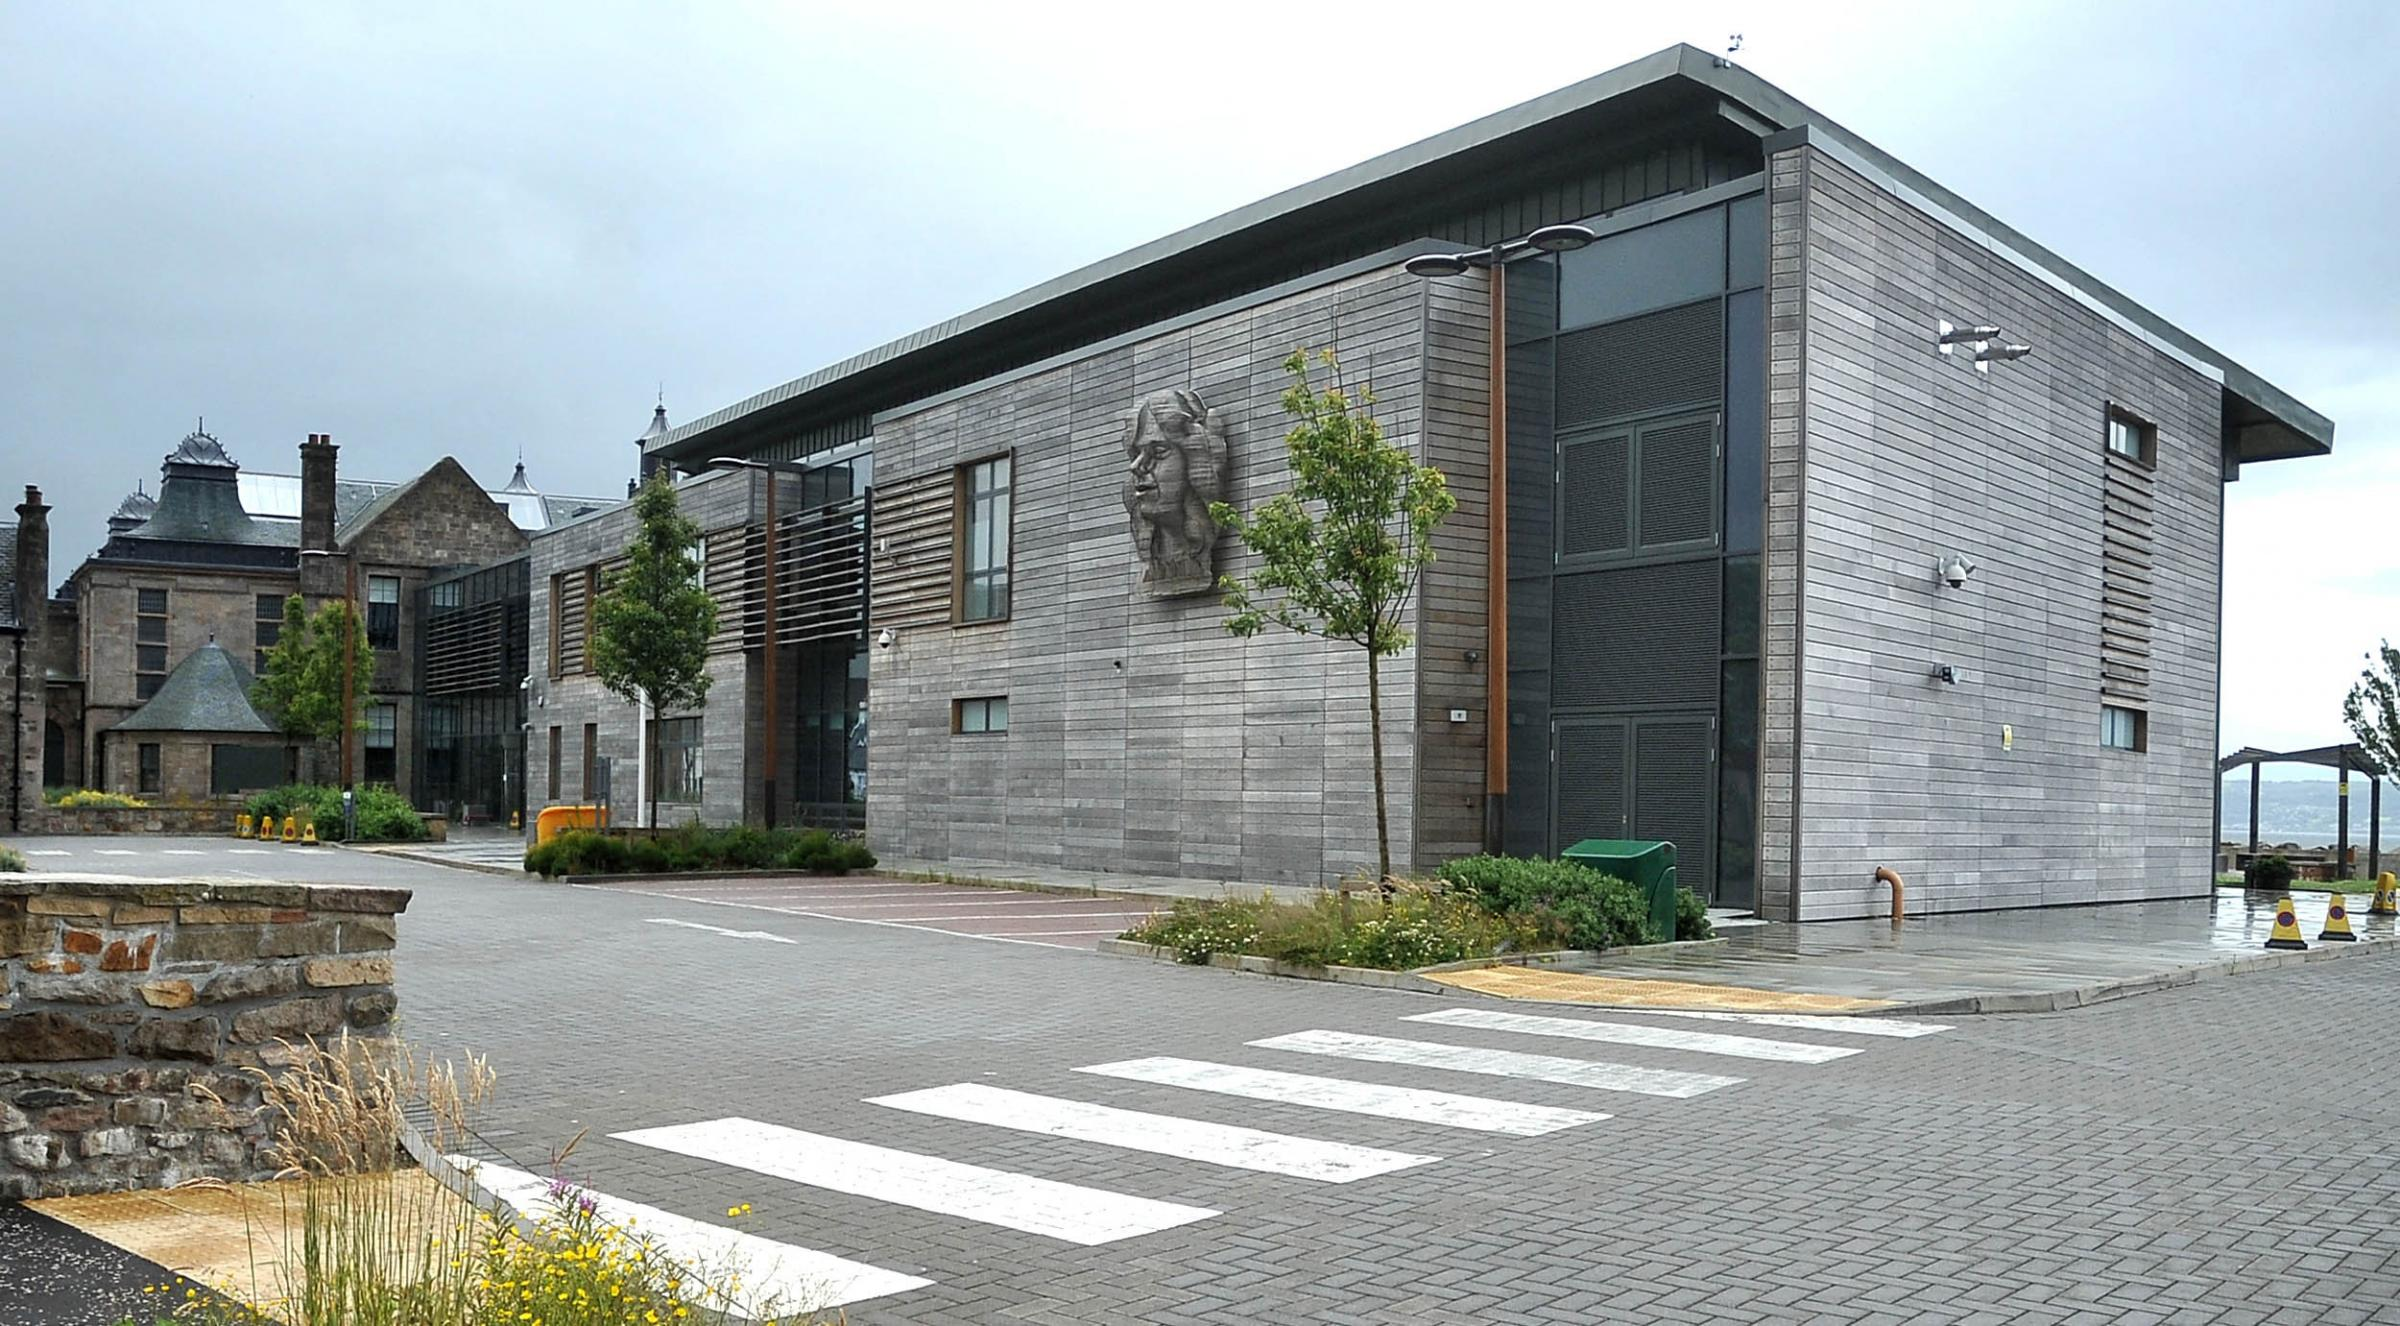 The Helensburgh and Lomond Civic Centre